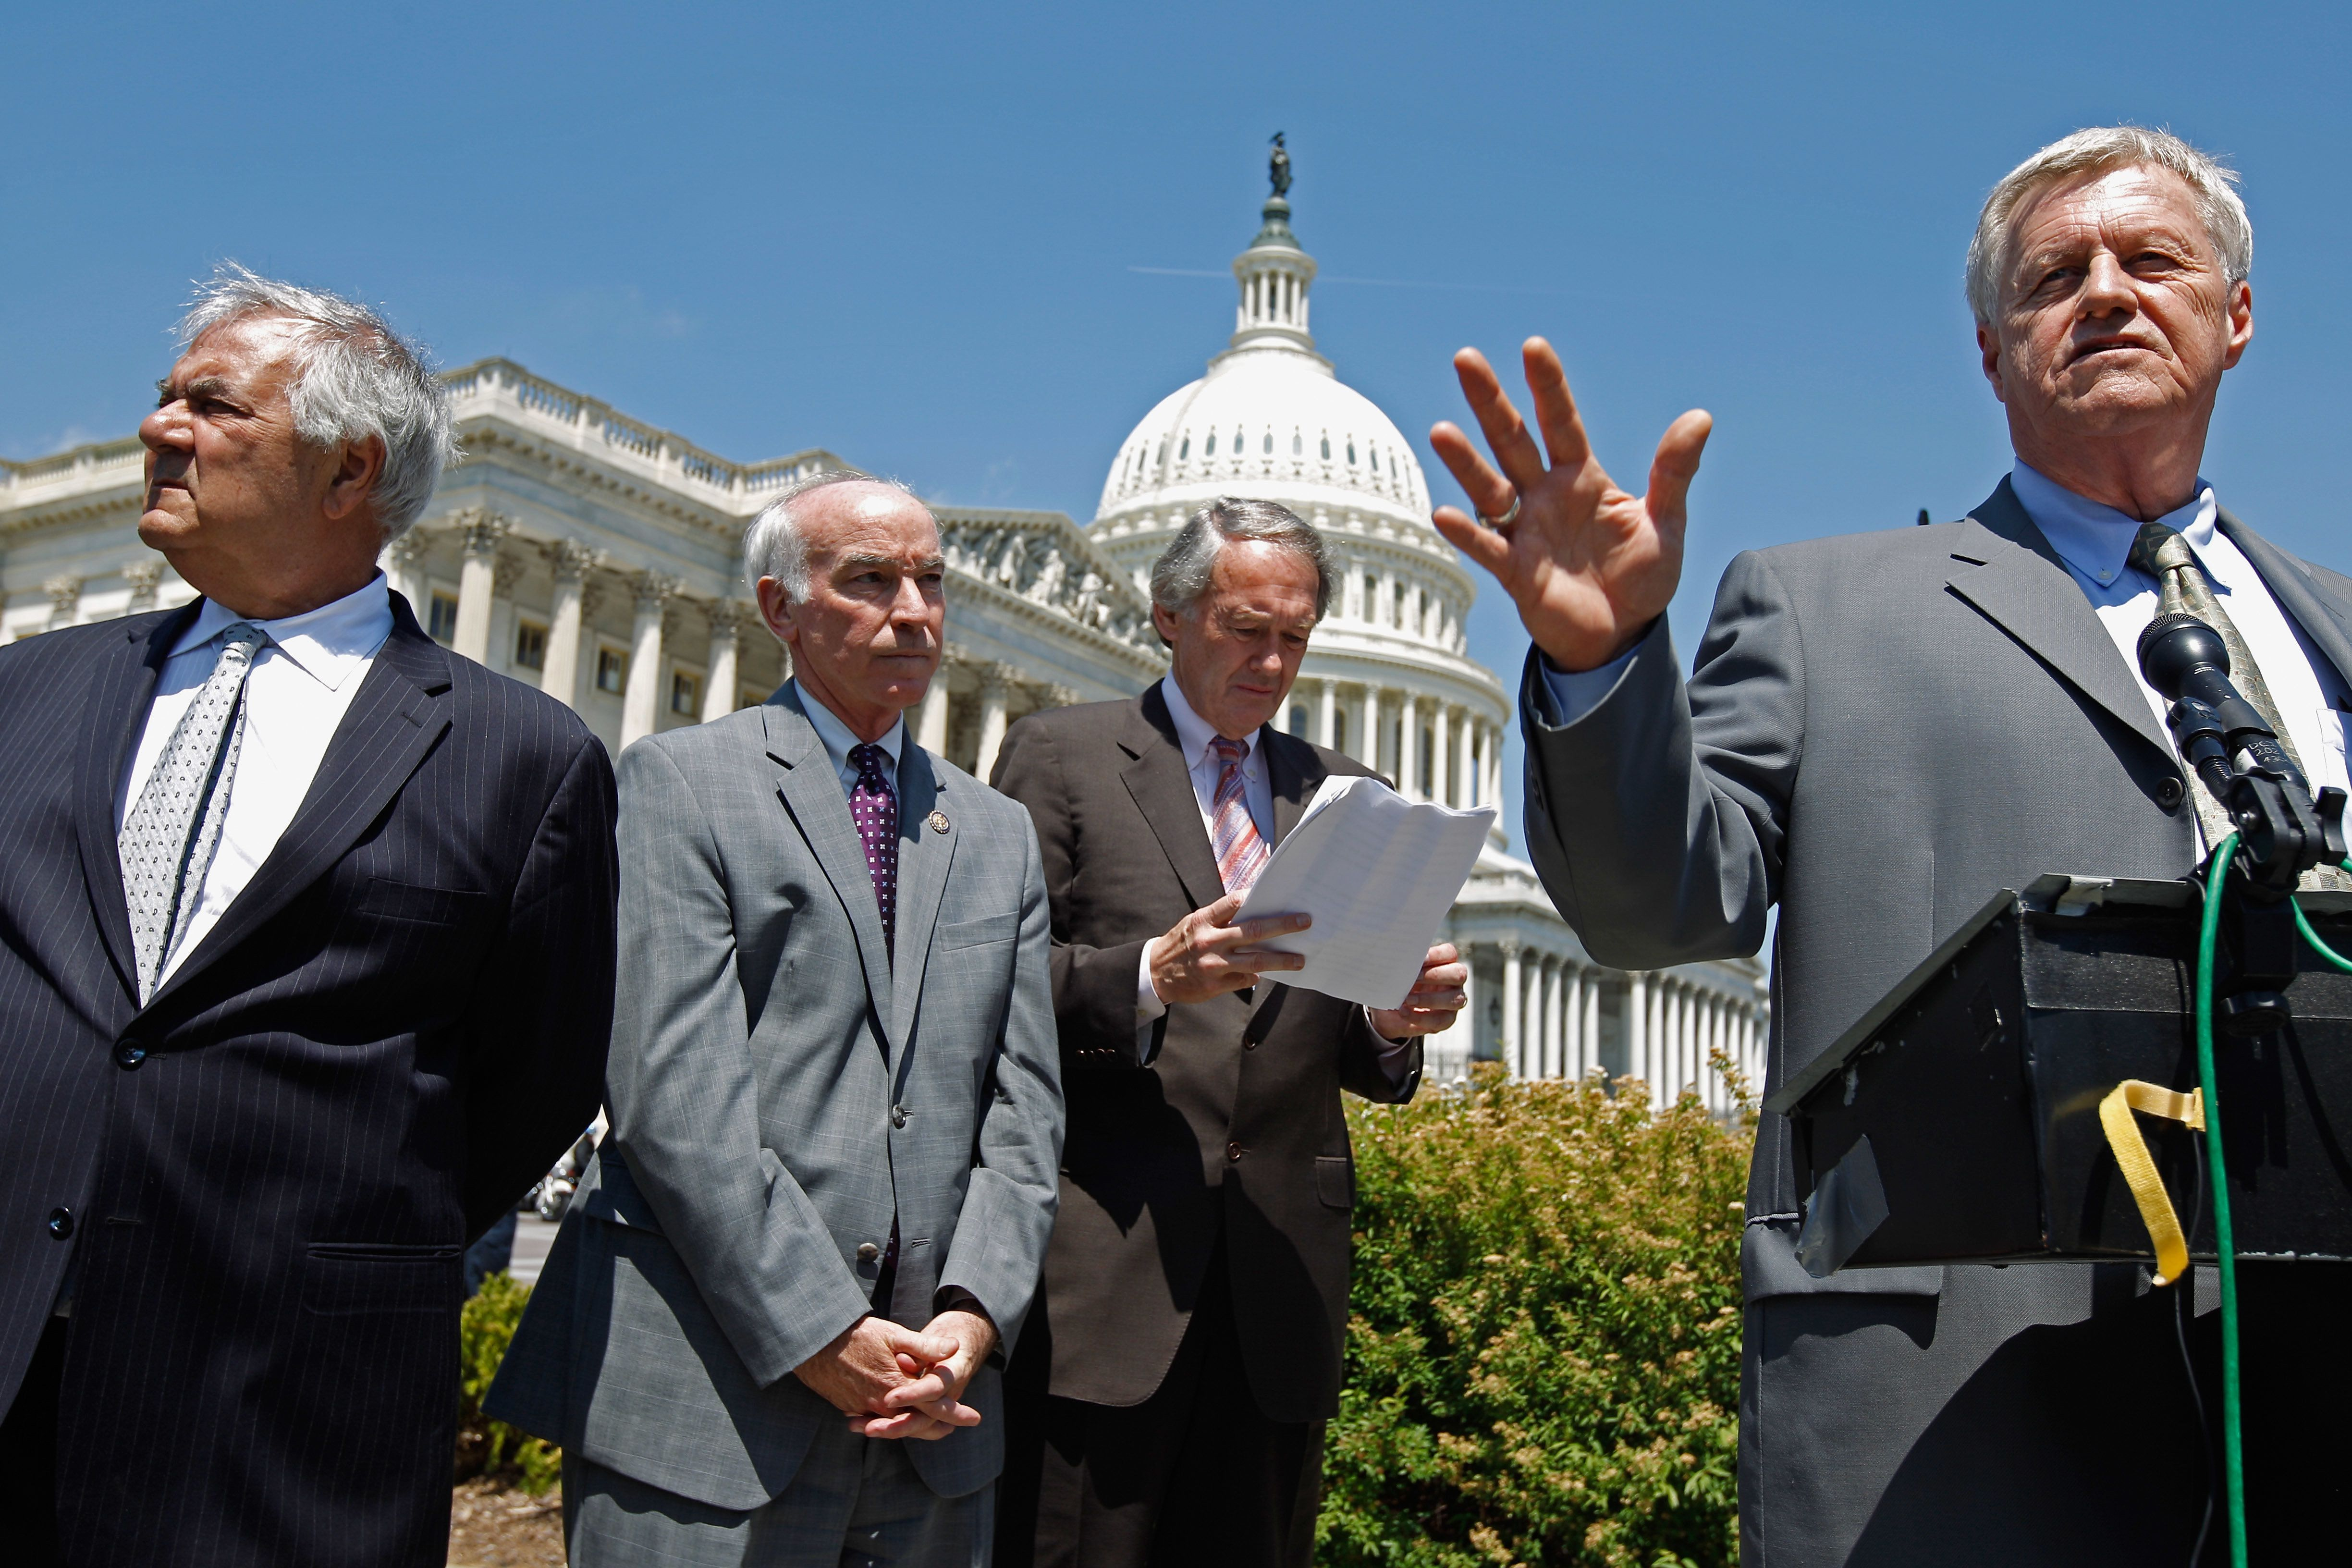 WASHINGTON, DC - MAY 11:  House Agriculture Committee ranking member Rep. Collin Peterson (D-MN) (R) speaks during a news conference with (L-R) Financal Services Committee ranking member Barney Frank (D-MA), Rep. Joe Courtney (D-CT) and Rep. Edward Markey (D-MA) outside the U.S. Capitol May 11, 2011 in Washington, DC. Peterson was joined by members of the House Finacial Services and Agriculture committees to protest what they call Republican efforts to roll back last year's Dodd-Frank financial reform legislation.  (Photo by Chip Somodevilla/Getty Images)